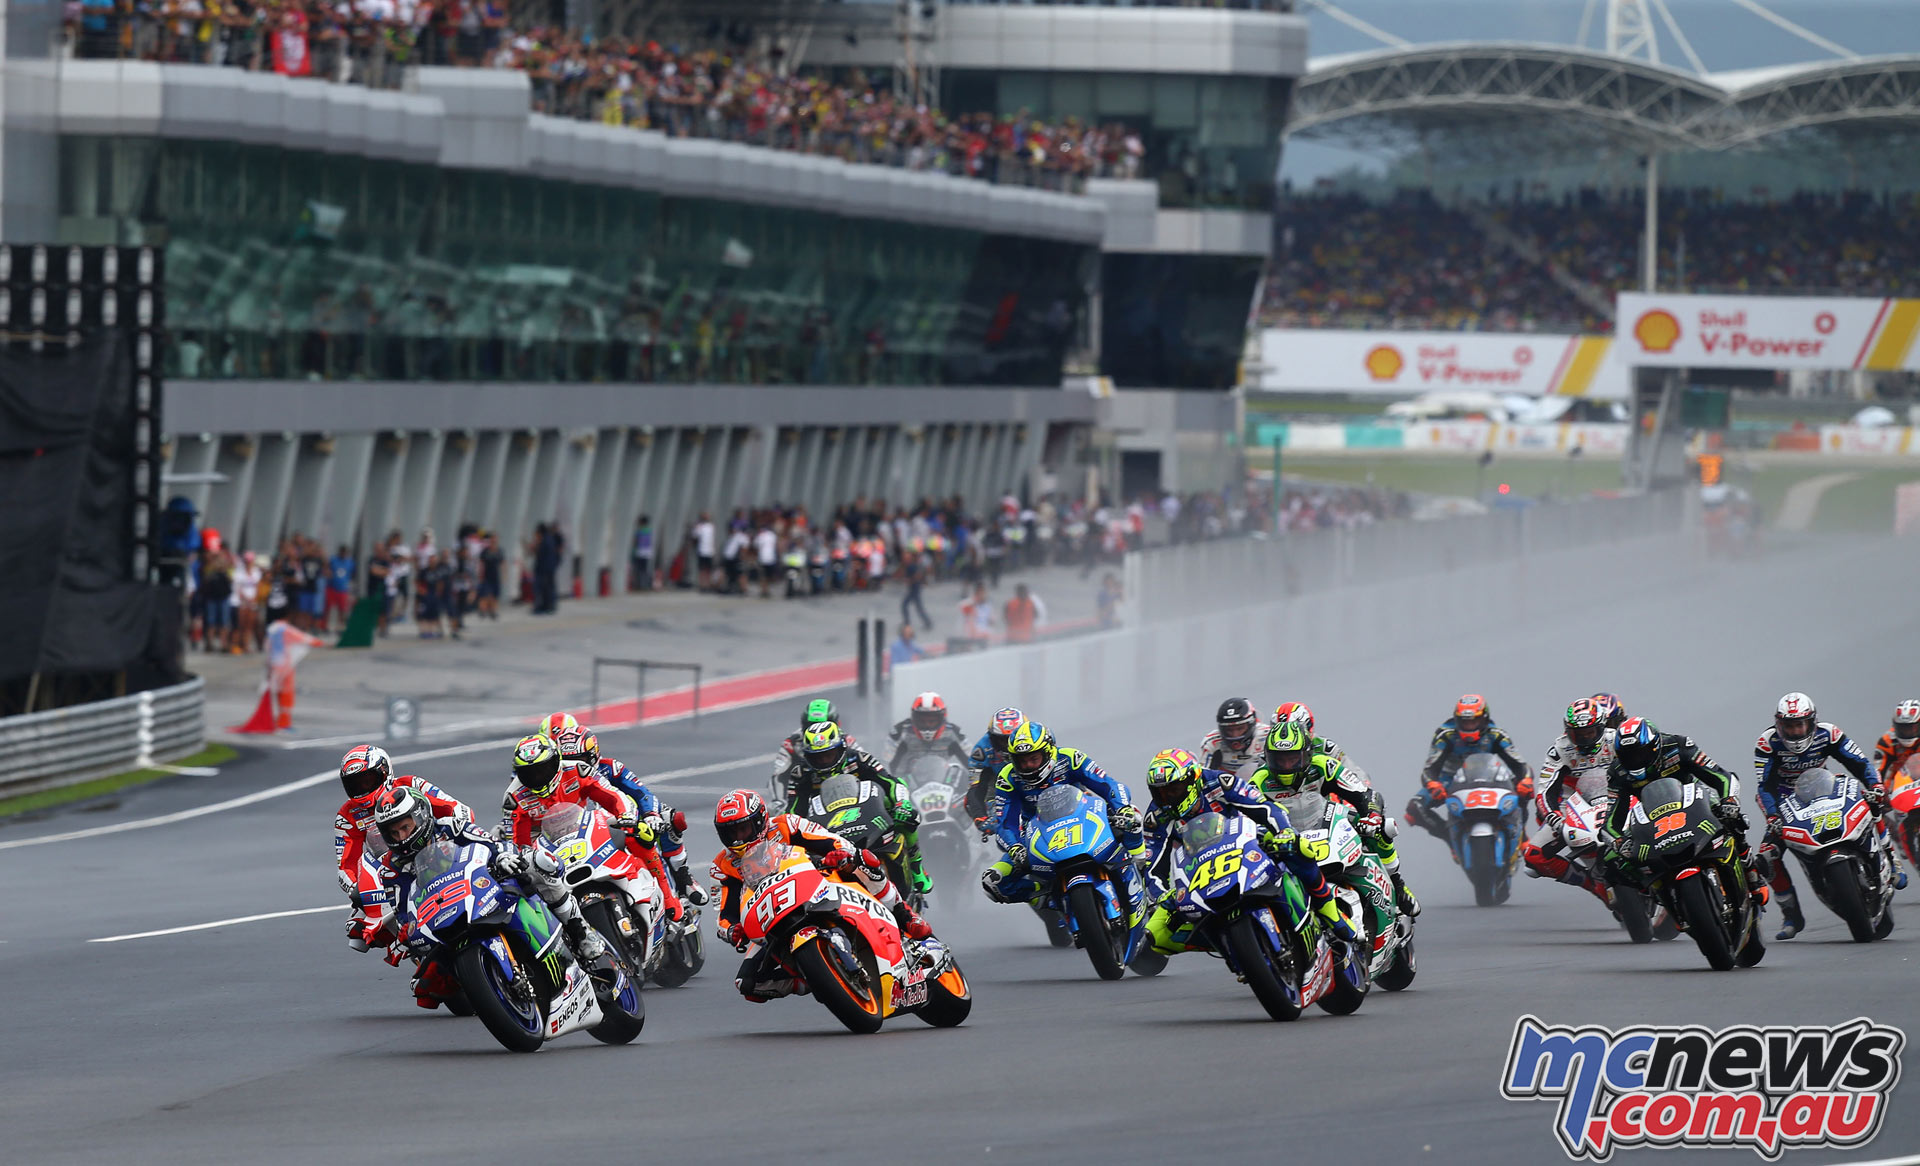 MotoGP race start - 2016 Sepang